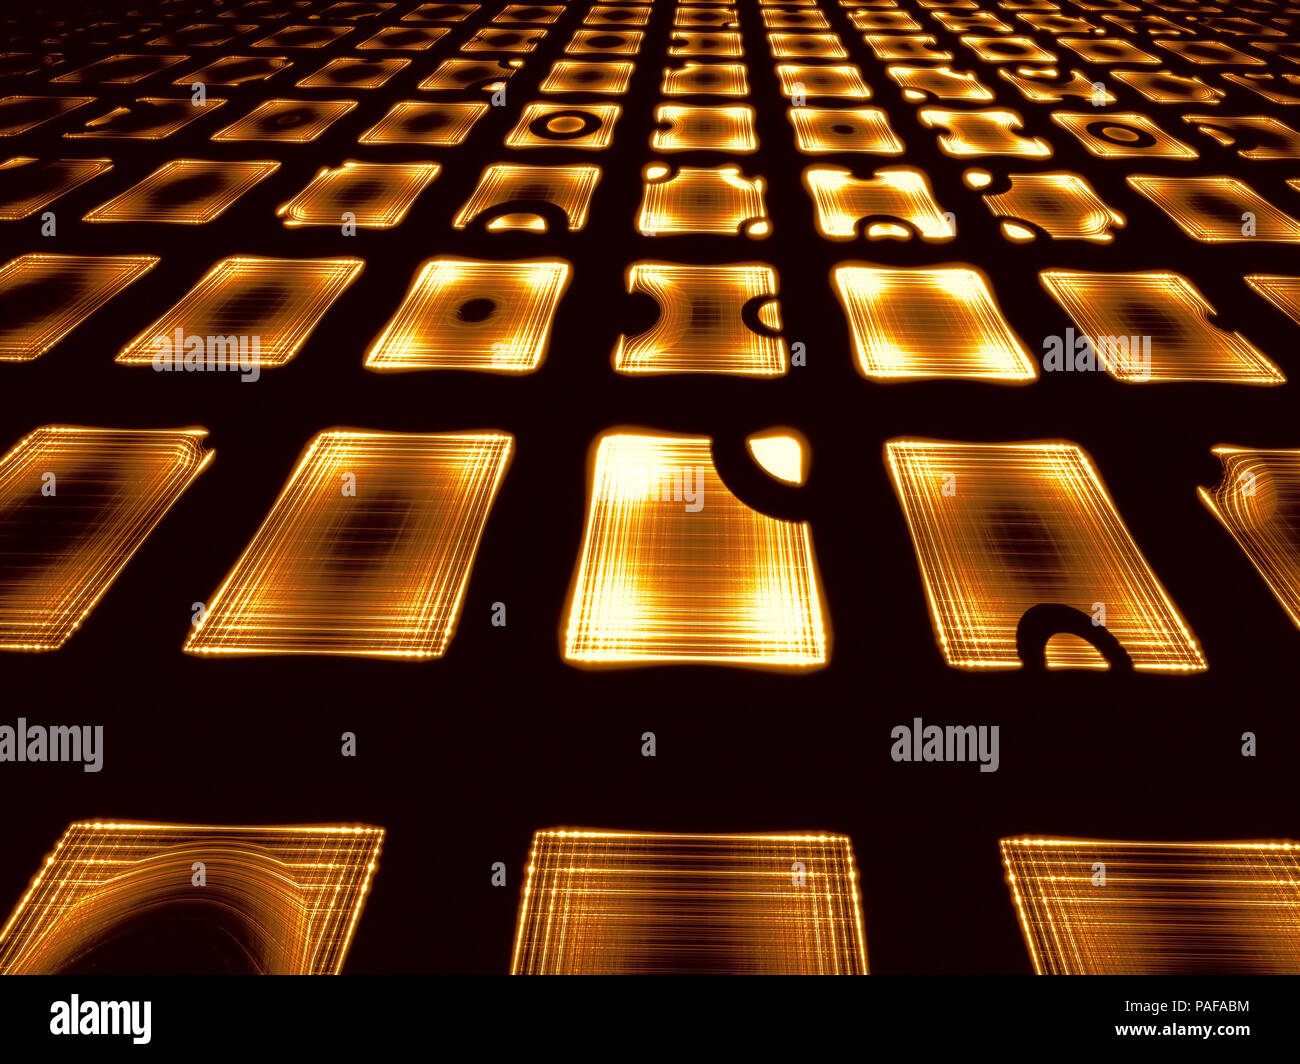 Simple perspective digitally generated image - Stock Image